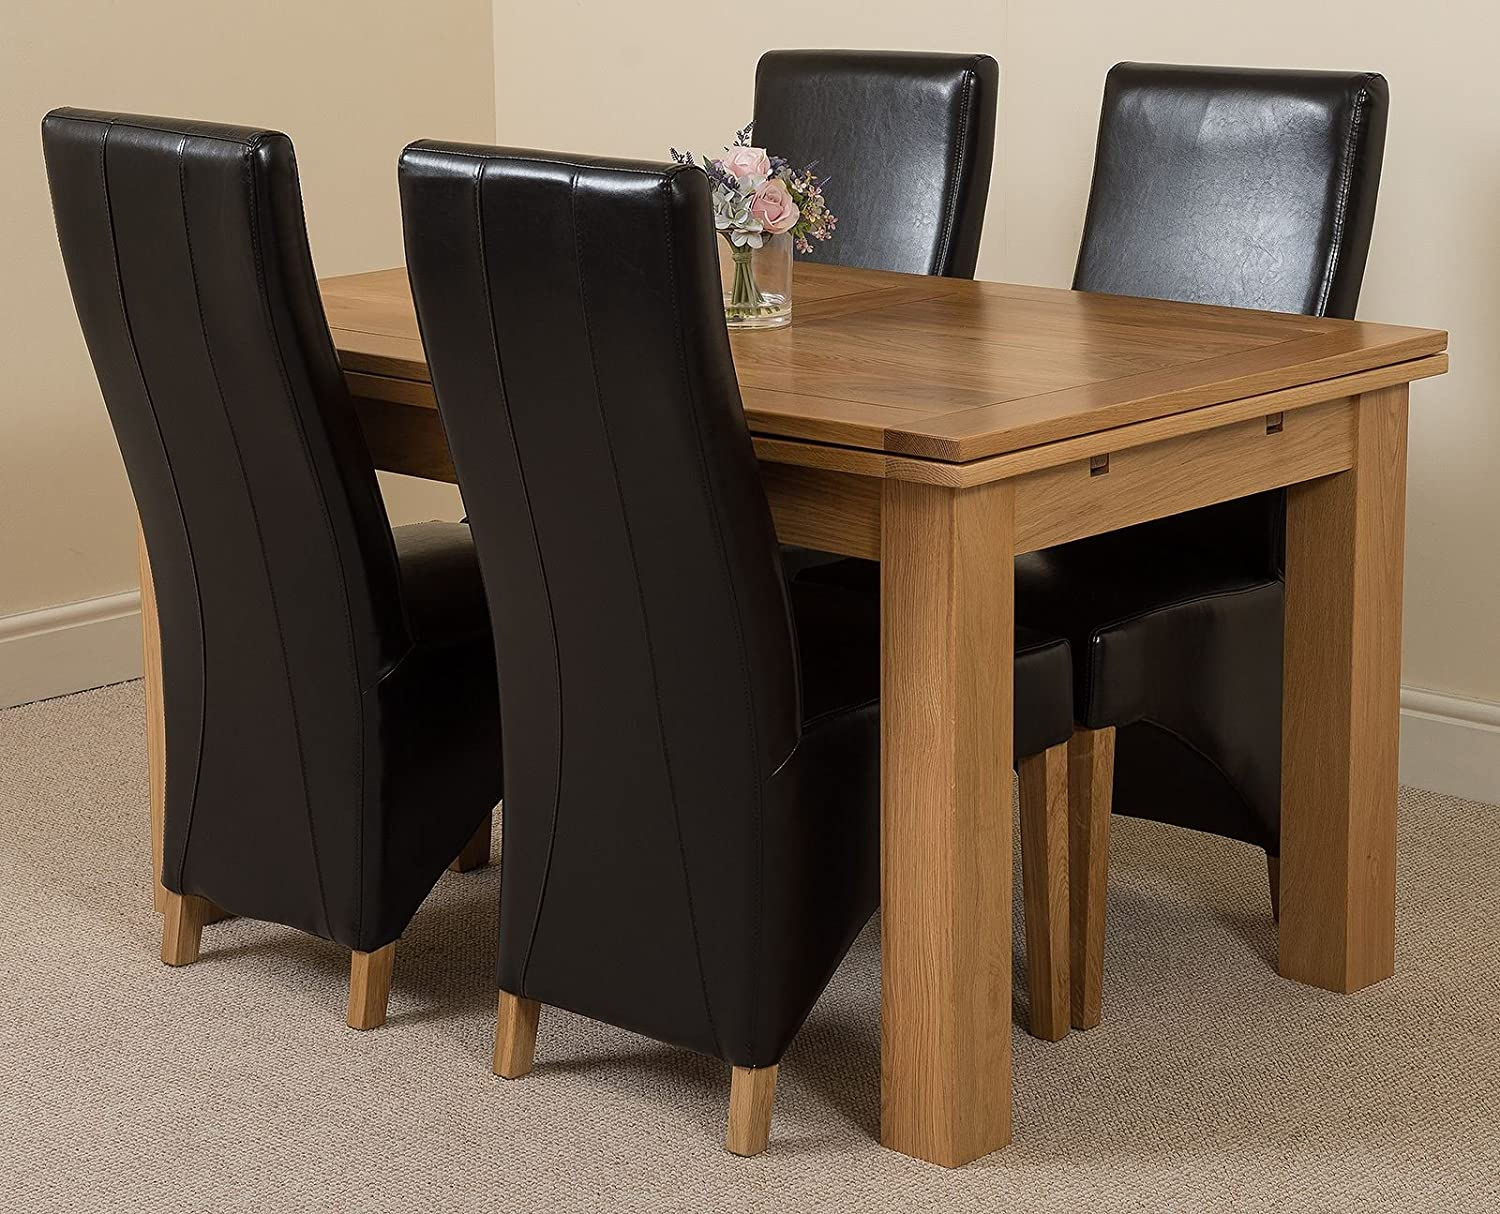 Modern furniture direct richmond medium extending solid oak dining table 4 black leather chairs 100 solid oak 140cm 220cm extending fast